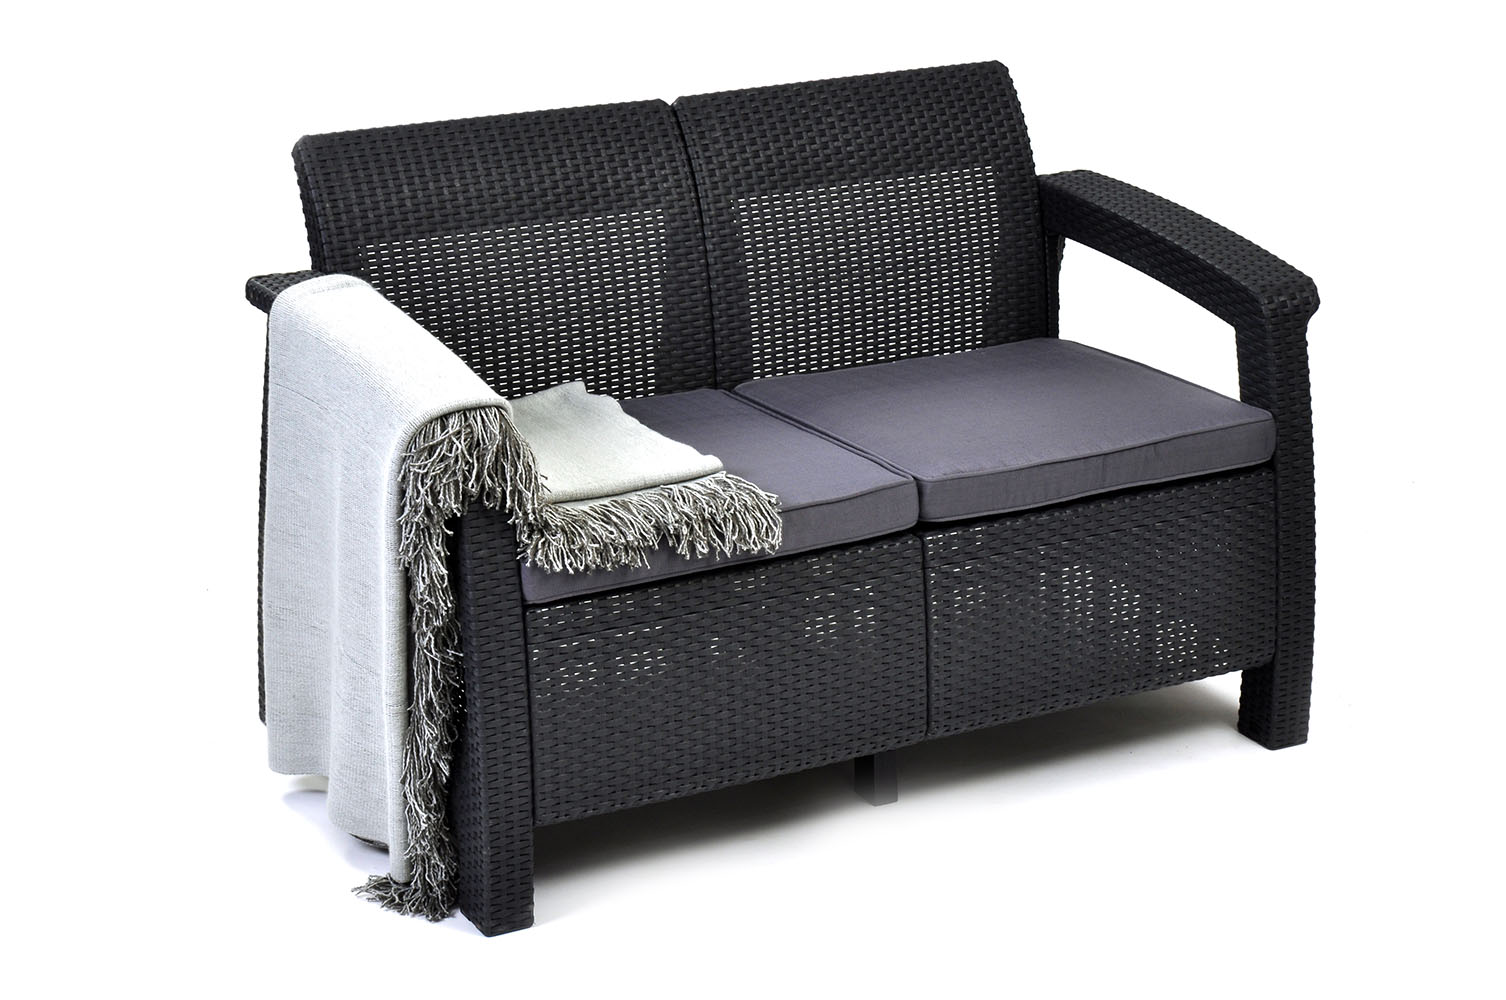 keter corfu resin love seat with cushions all weather plastic patio furniture charcoal gray rattan walmartcom